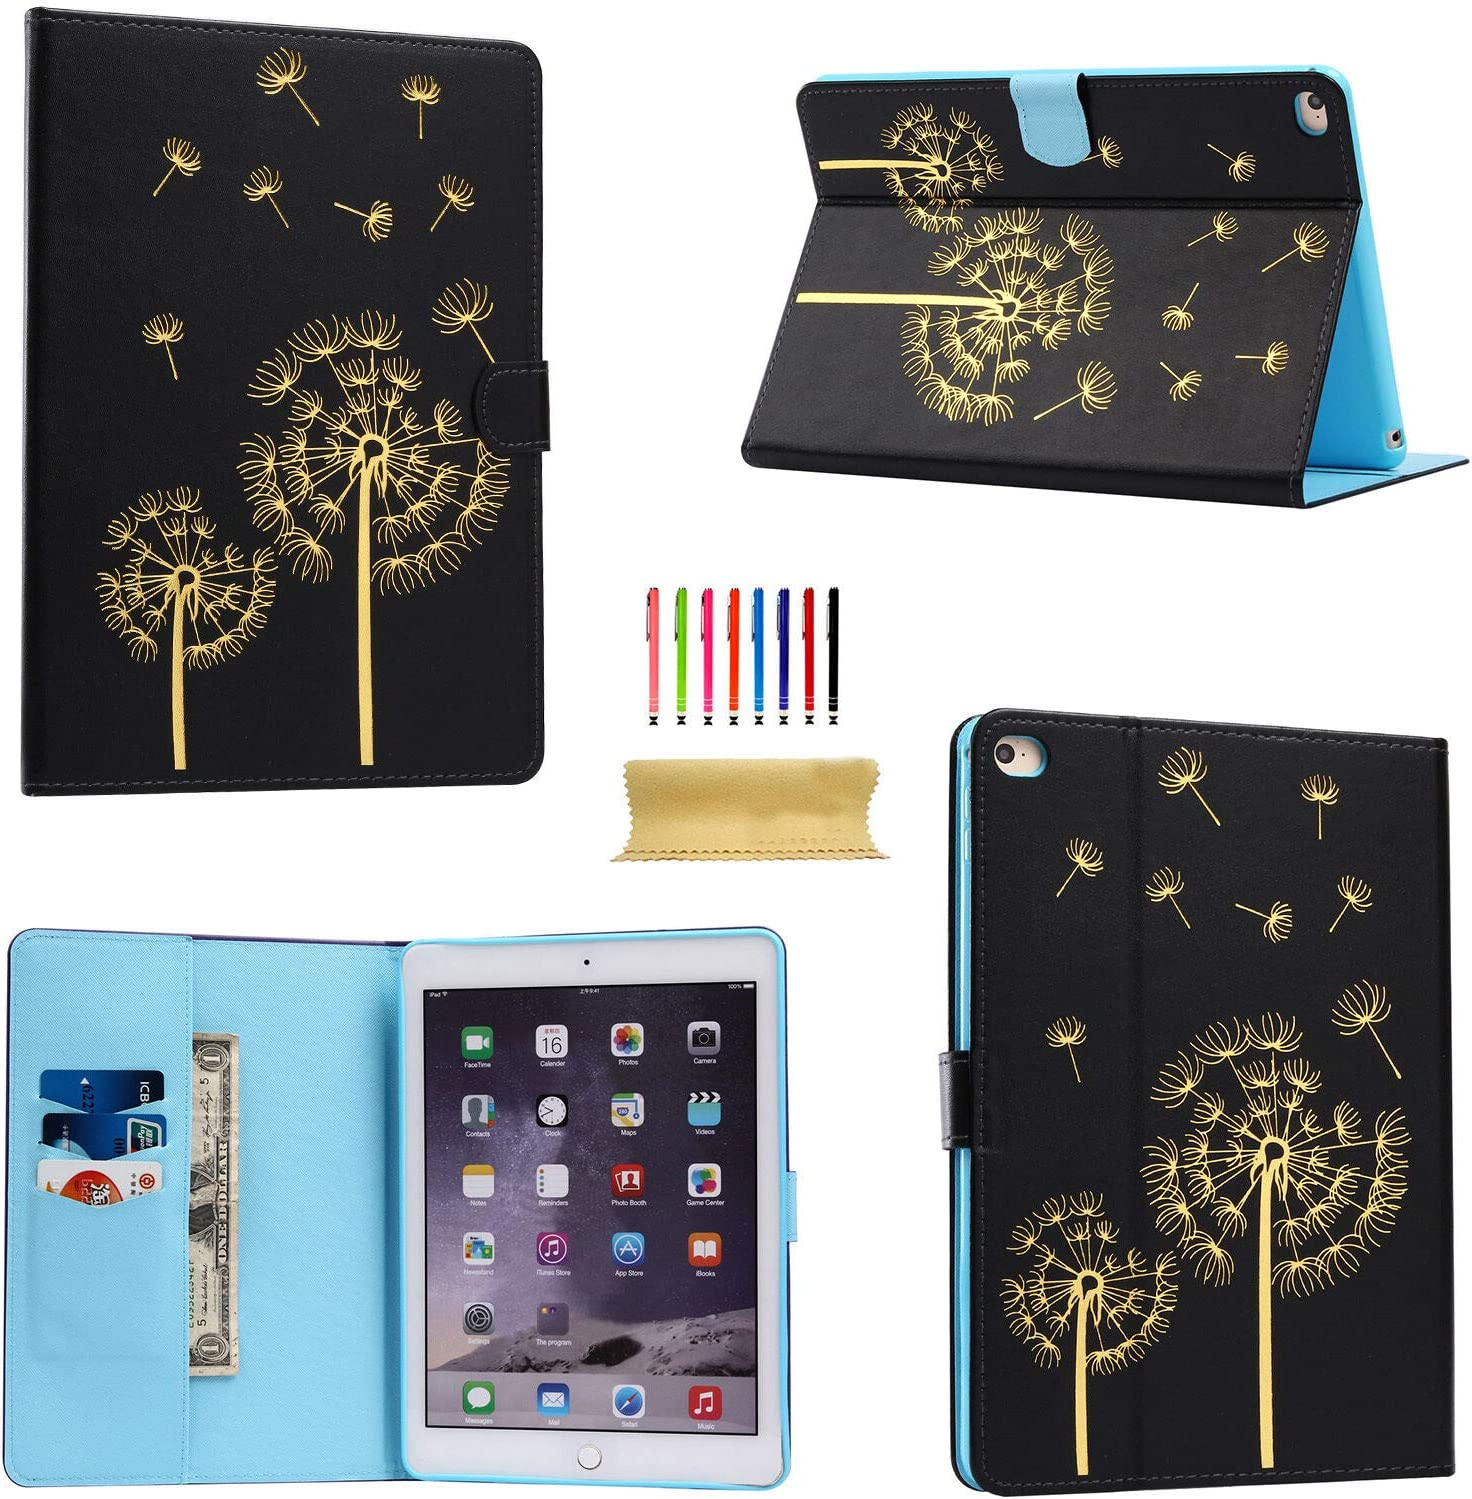 Case Safety 1x Apple iPad 9.7 2018 2017 / iPad Air 2/1 Smart Wallet Leather Case Stand Cover for iPad 5/6th Gen, Black Dandelion